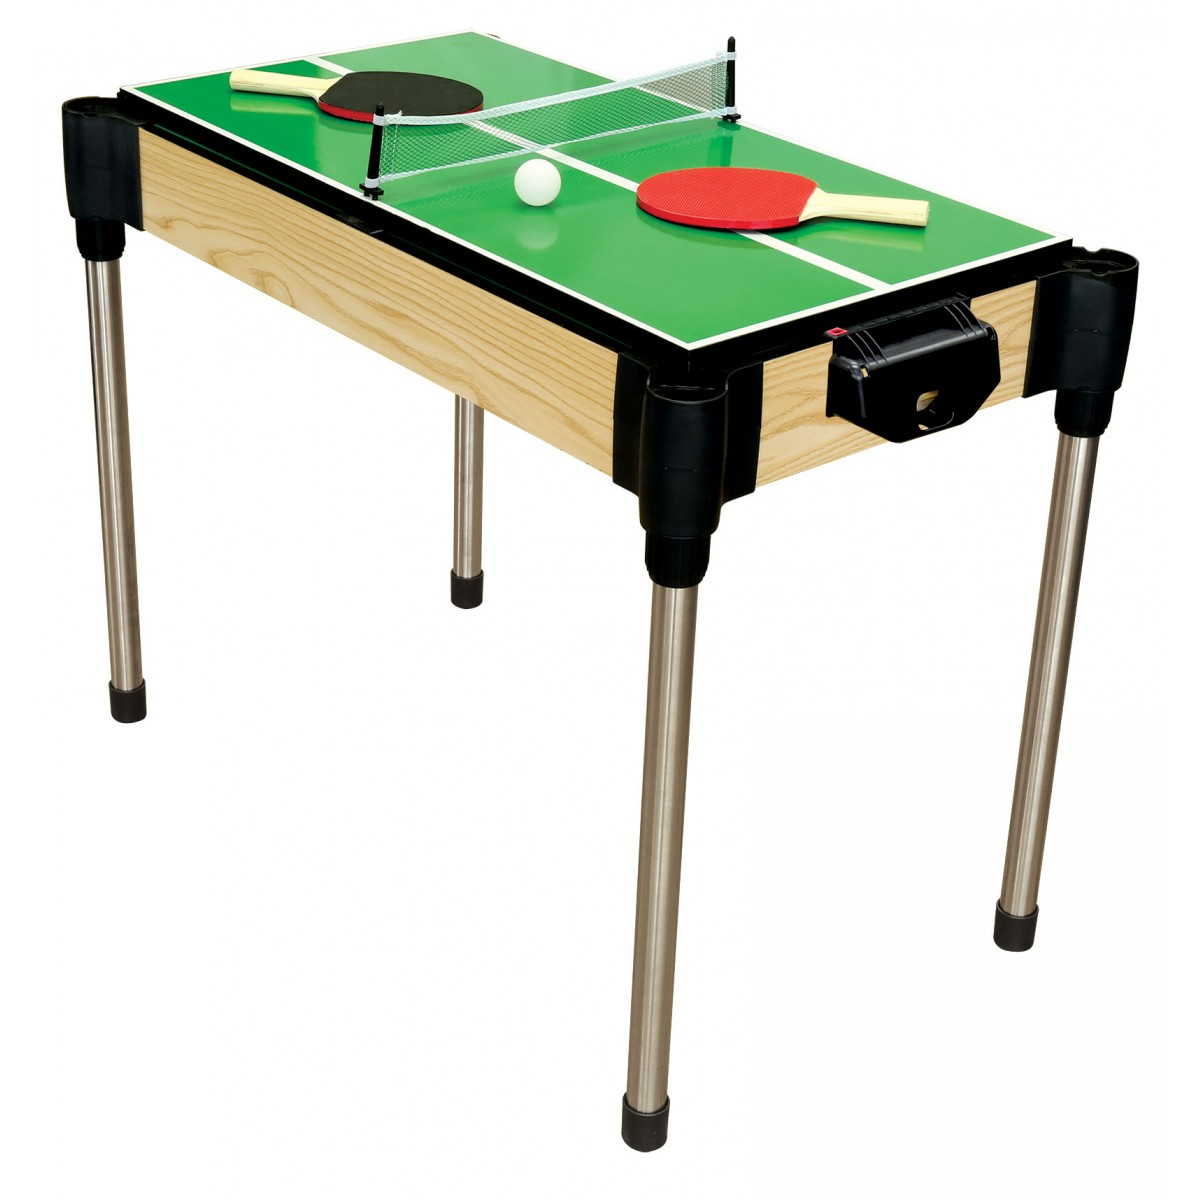 36 92cm 11 in 1 games table air hockey basketball for 11 in 1 game table